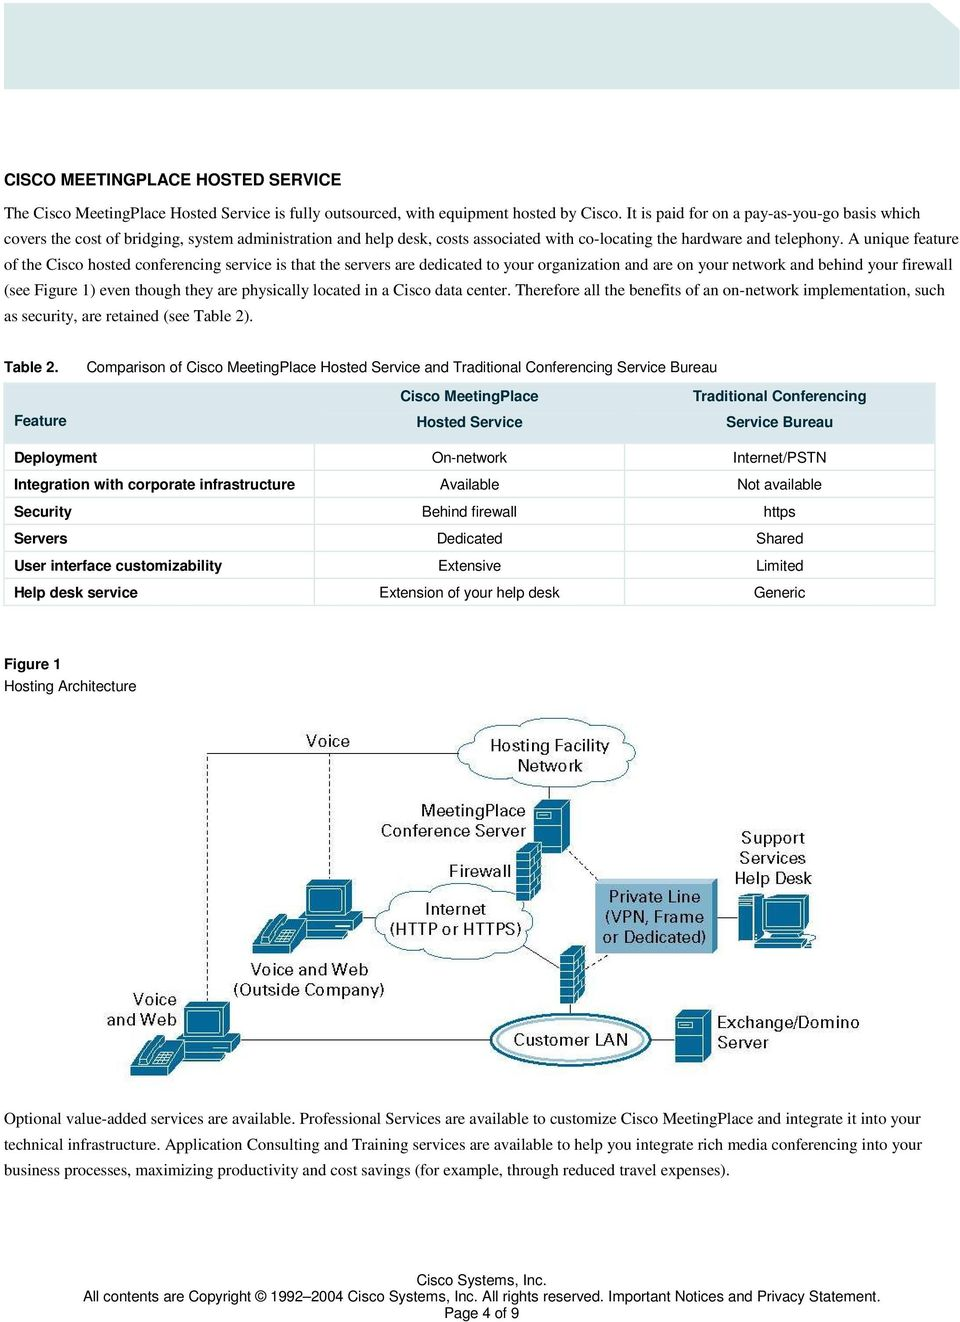 A unique feature of the Cisco hosted conferencing service is that the servers are dedicated to your organization and are on your network and behind your firewall (see Figure 1) even though they are